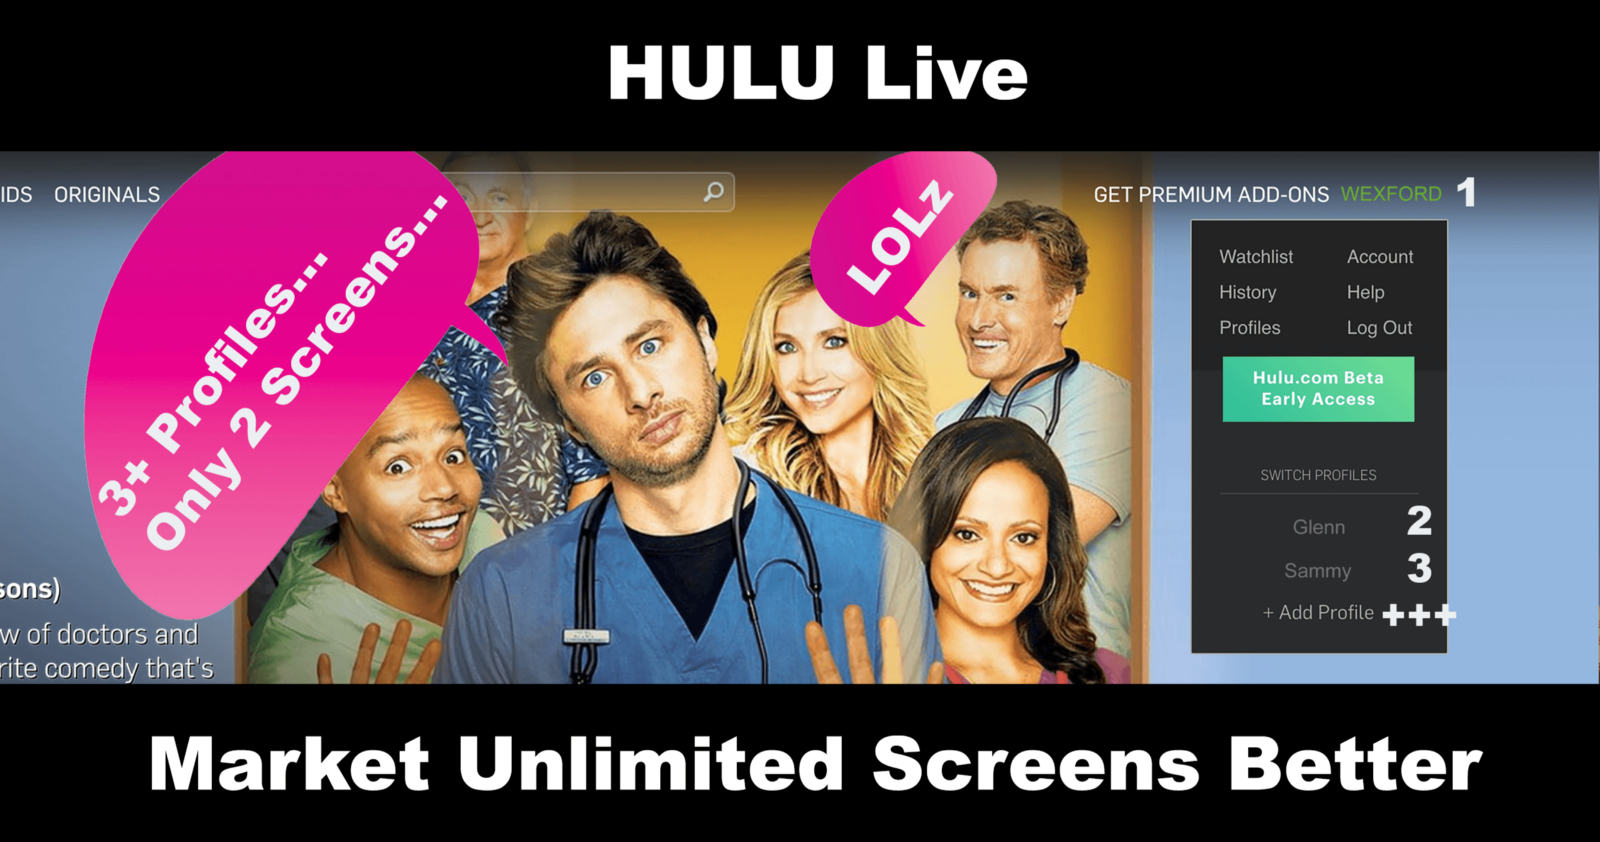 Hulu Live: Market Unlimited Screens Better - Wexford